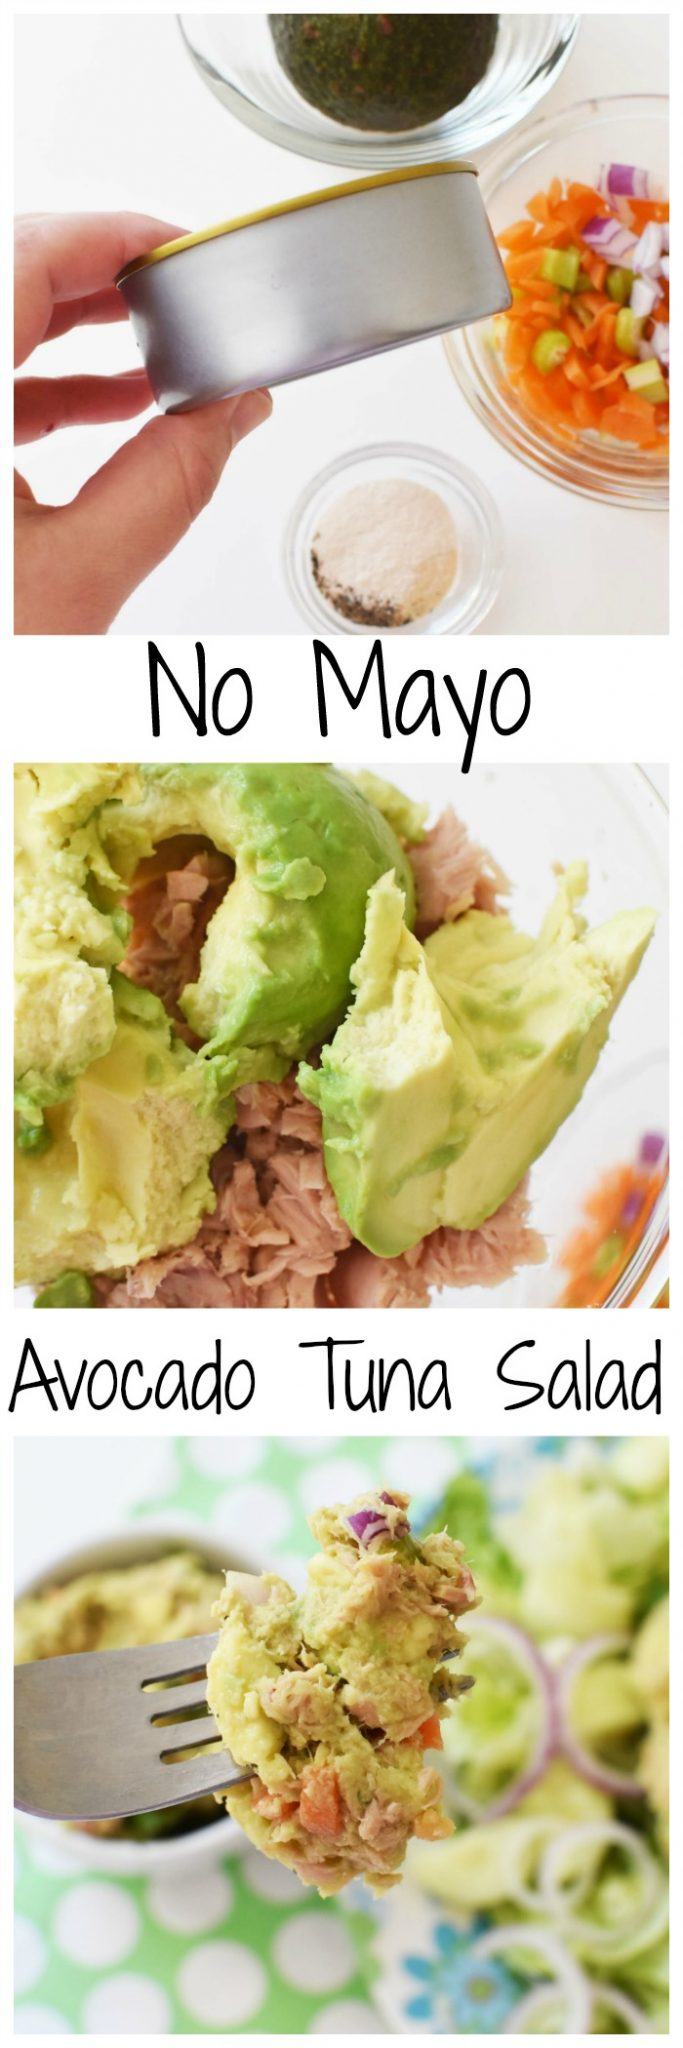 Amazing Avocado Tuna Salad